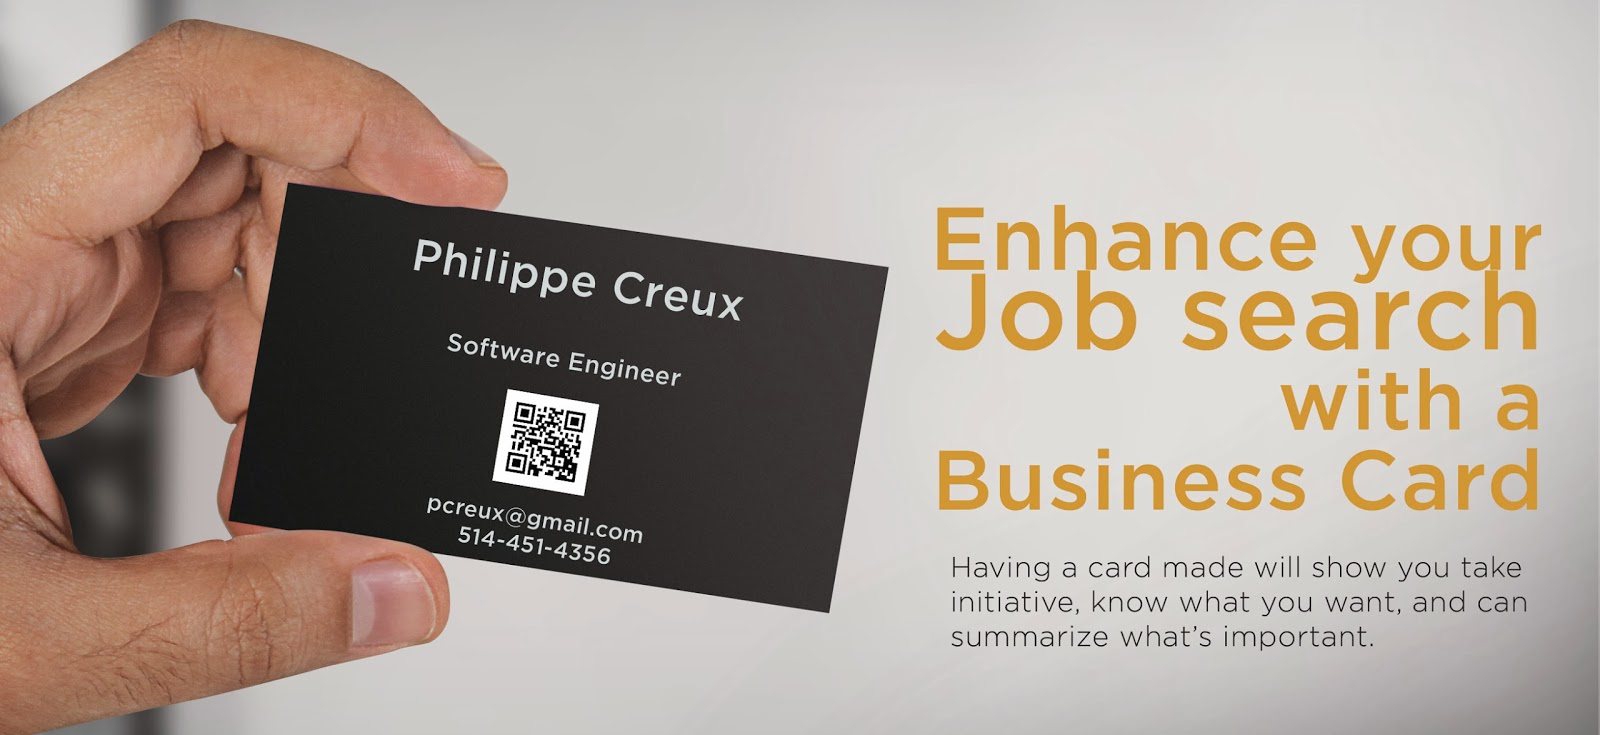 Personal Business Cards For Job Seekers Examples Gallery - Card ...